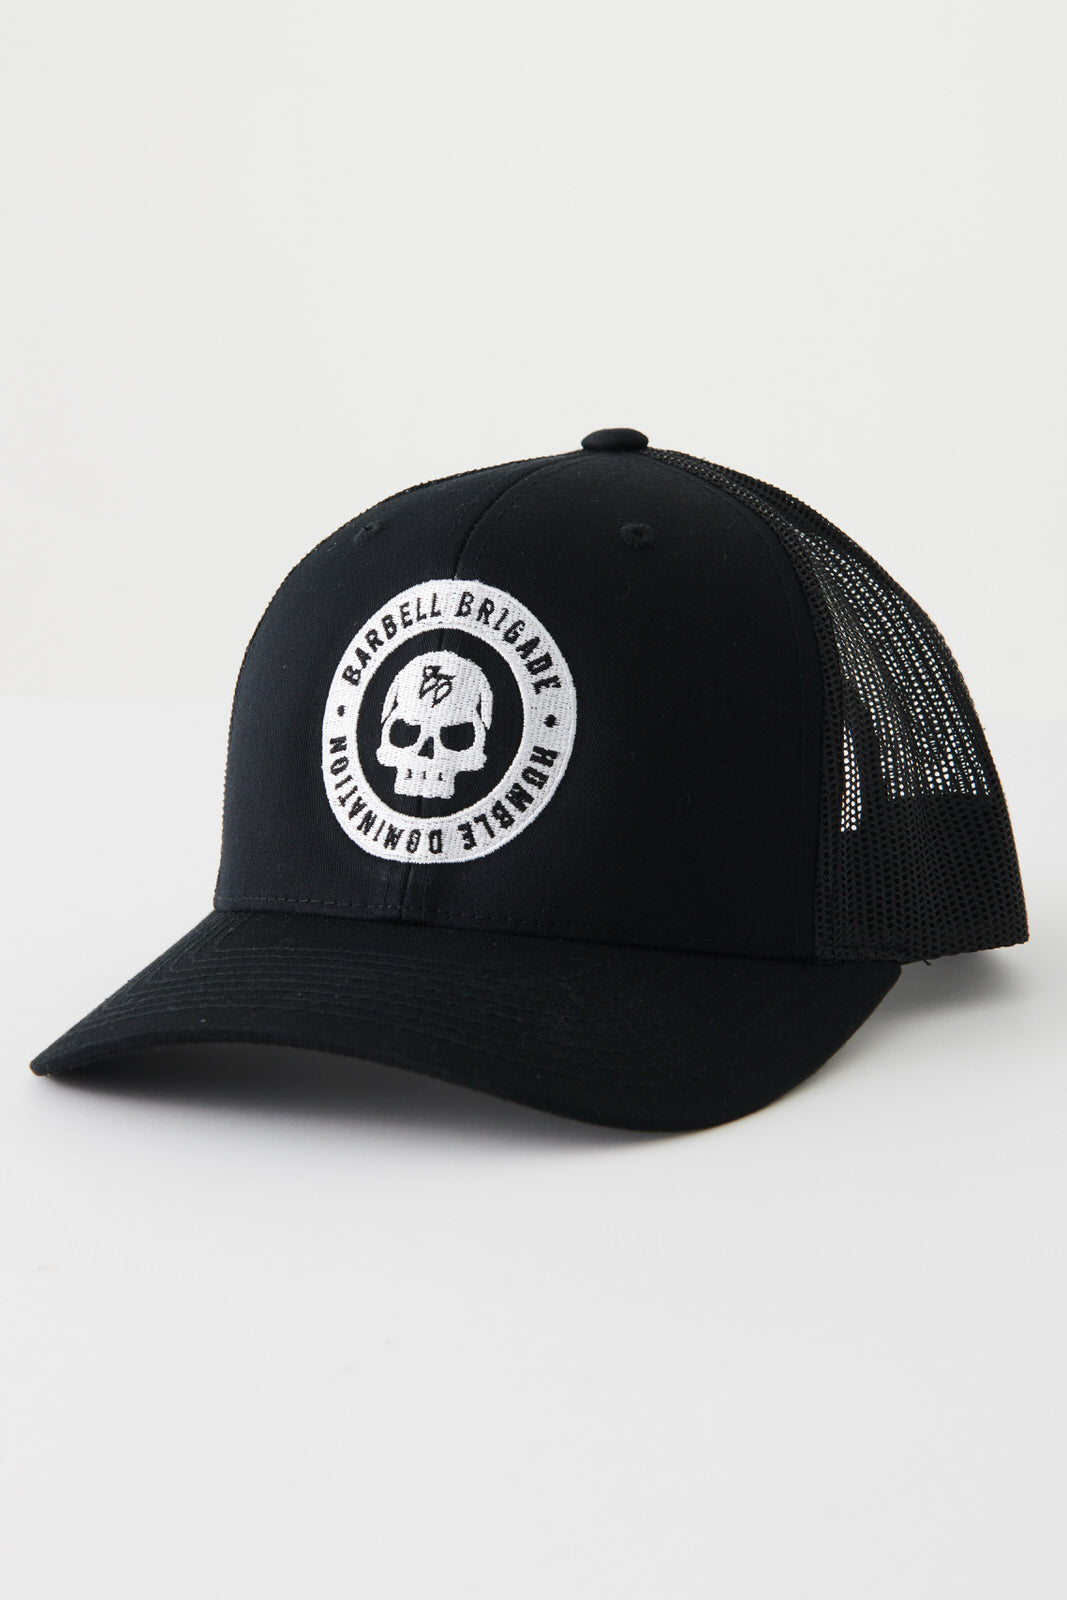 Renegade - Retro Trucker Hat (Black)